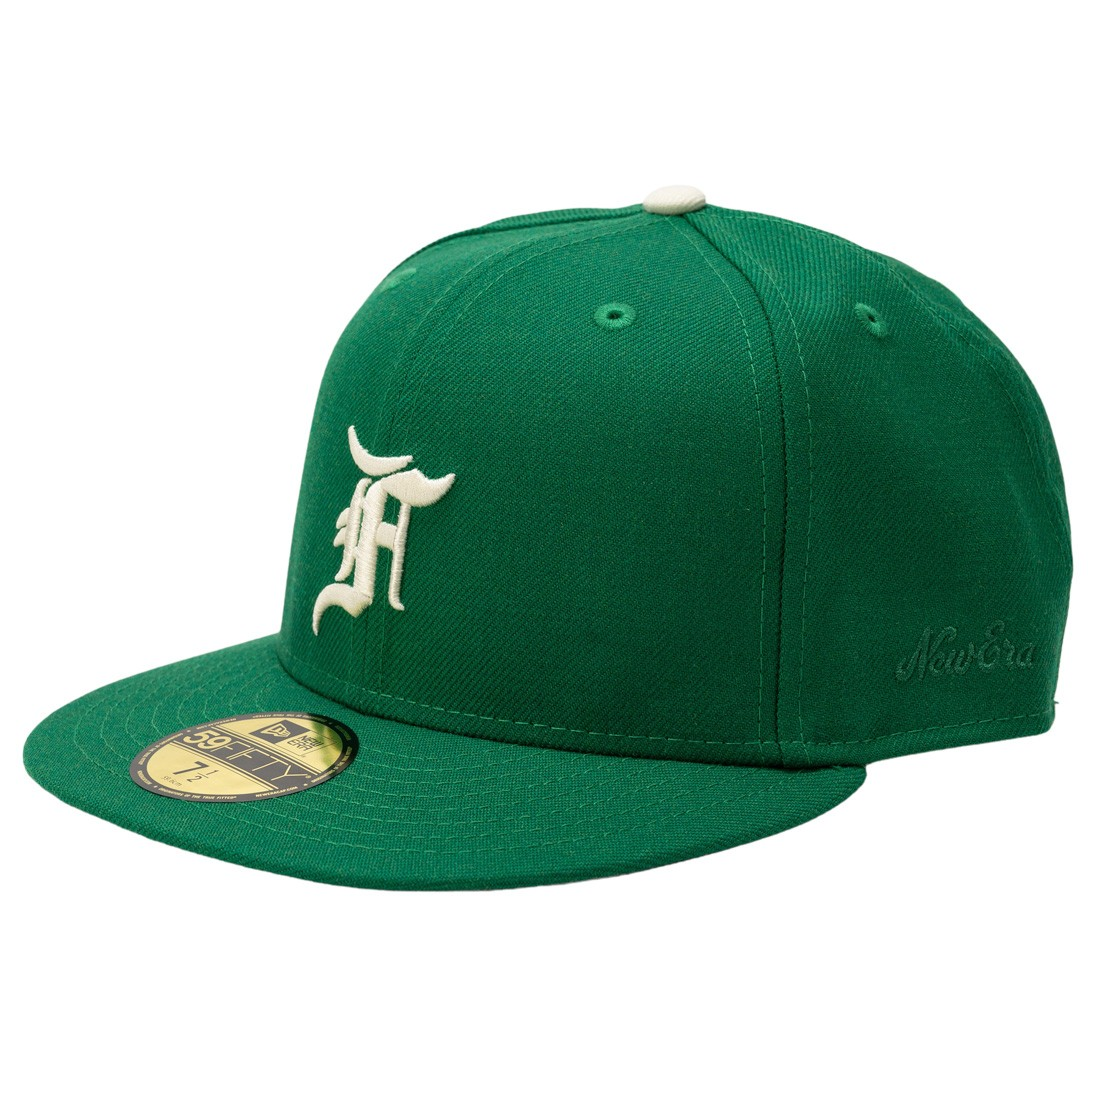 New Era x Fear Of God Essentials 59Fifty Fitted Cap (green)